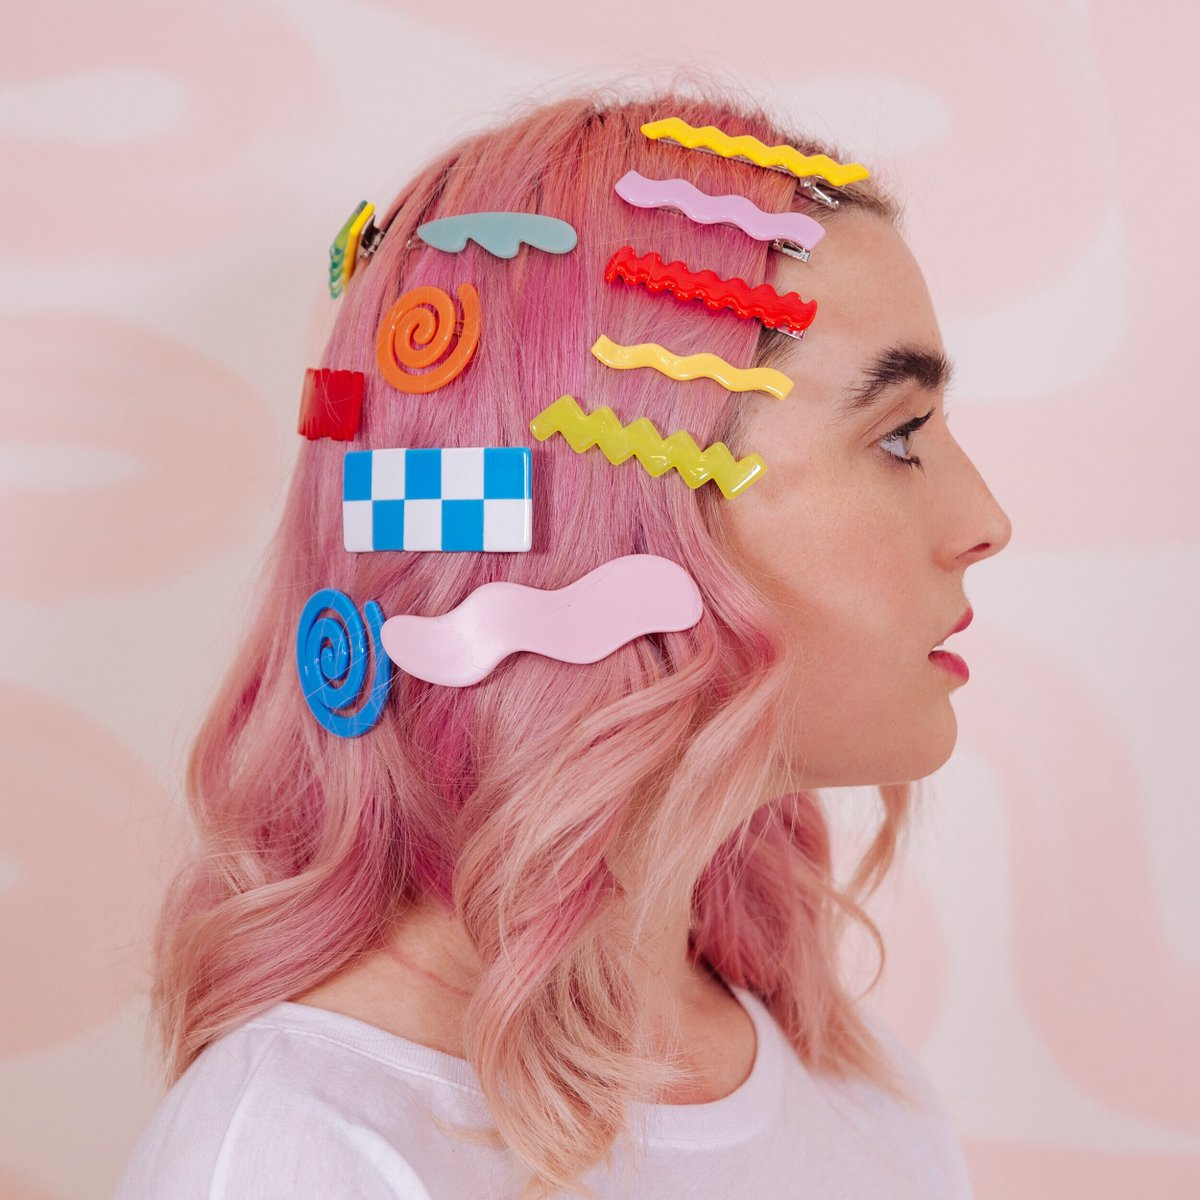 Replying to @YUKFUNWOW: Cute n colourful hair accessories by Chunks